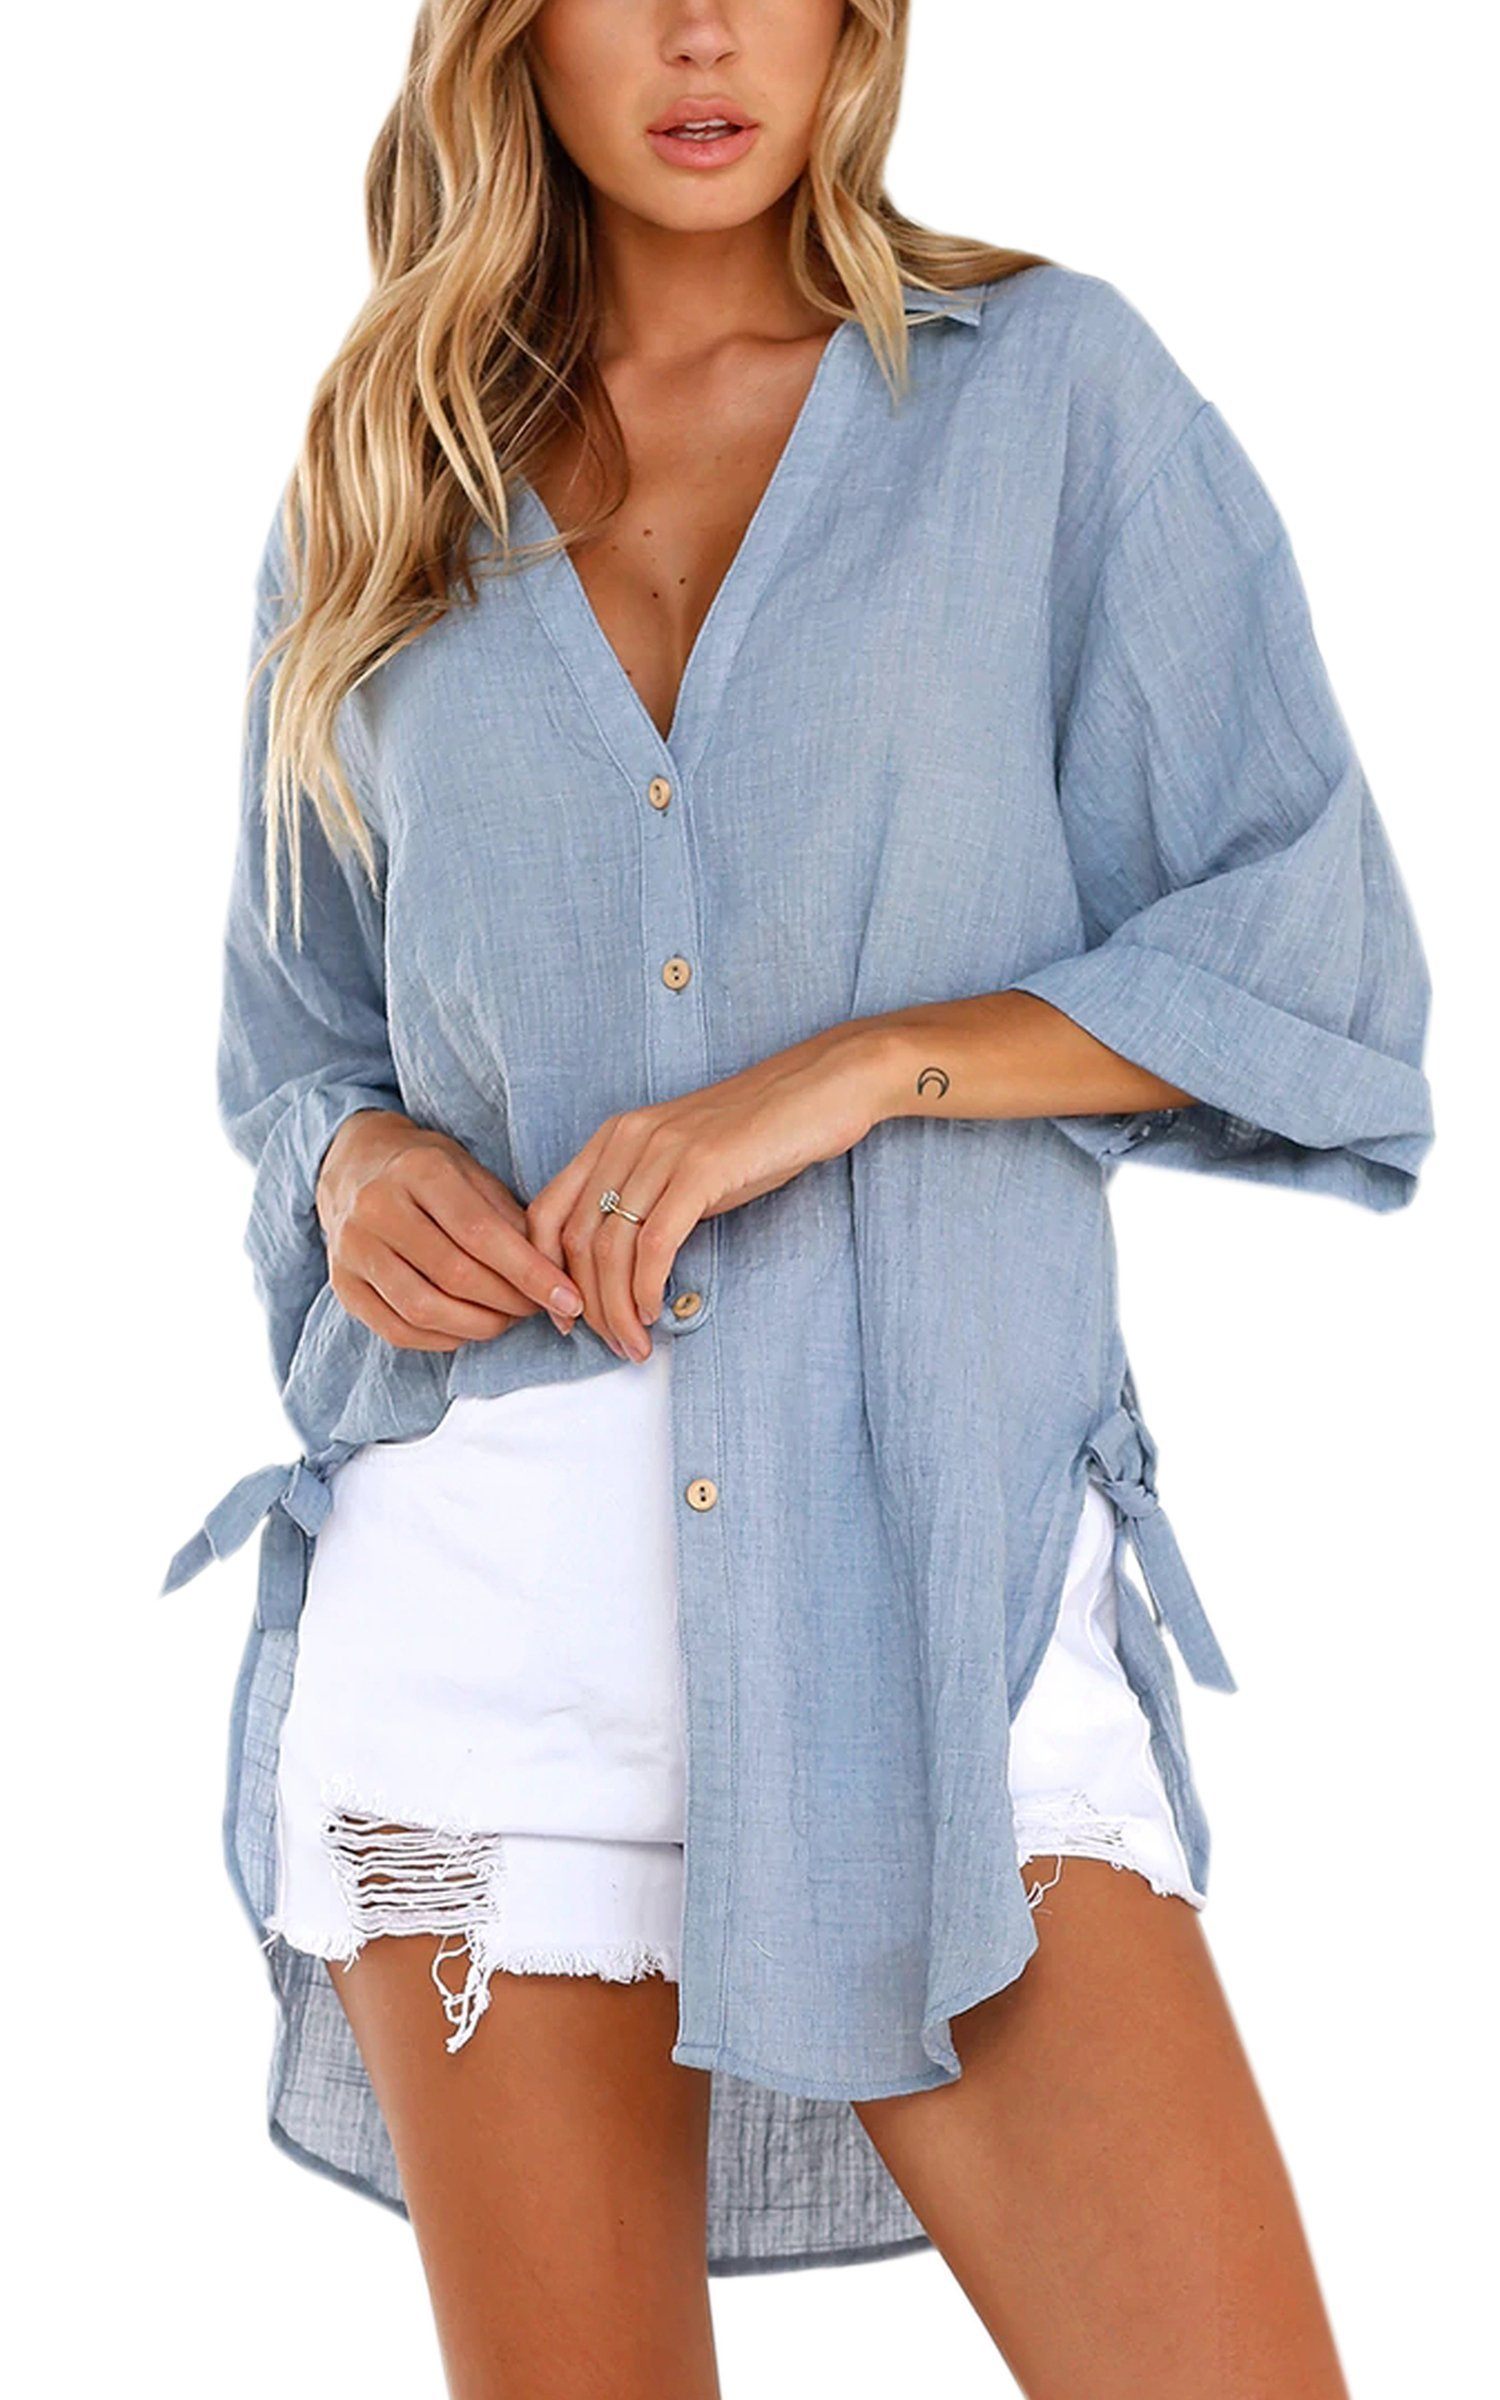 ECOWISH Womens Shirts Casual Long Sleeve Solid V Neck Shirts Loose Button Down Blouse Tops Blue L